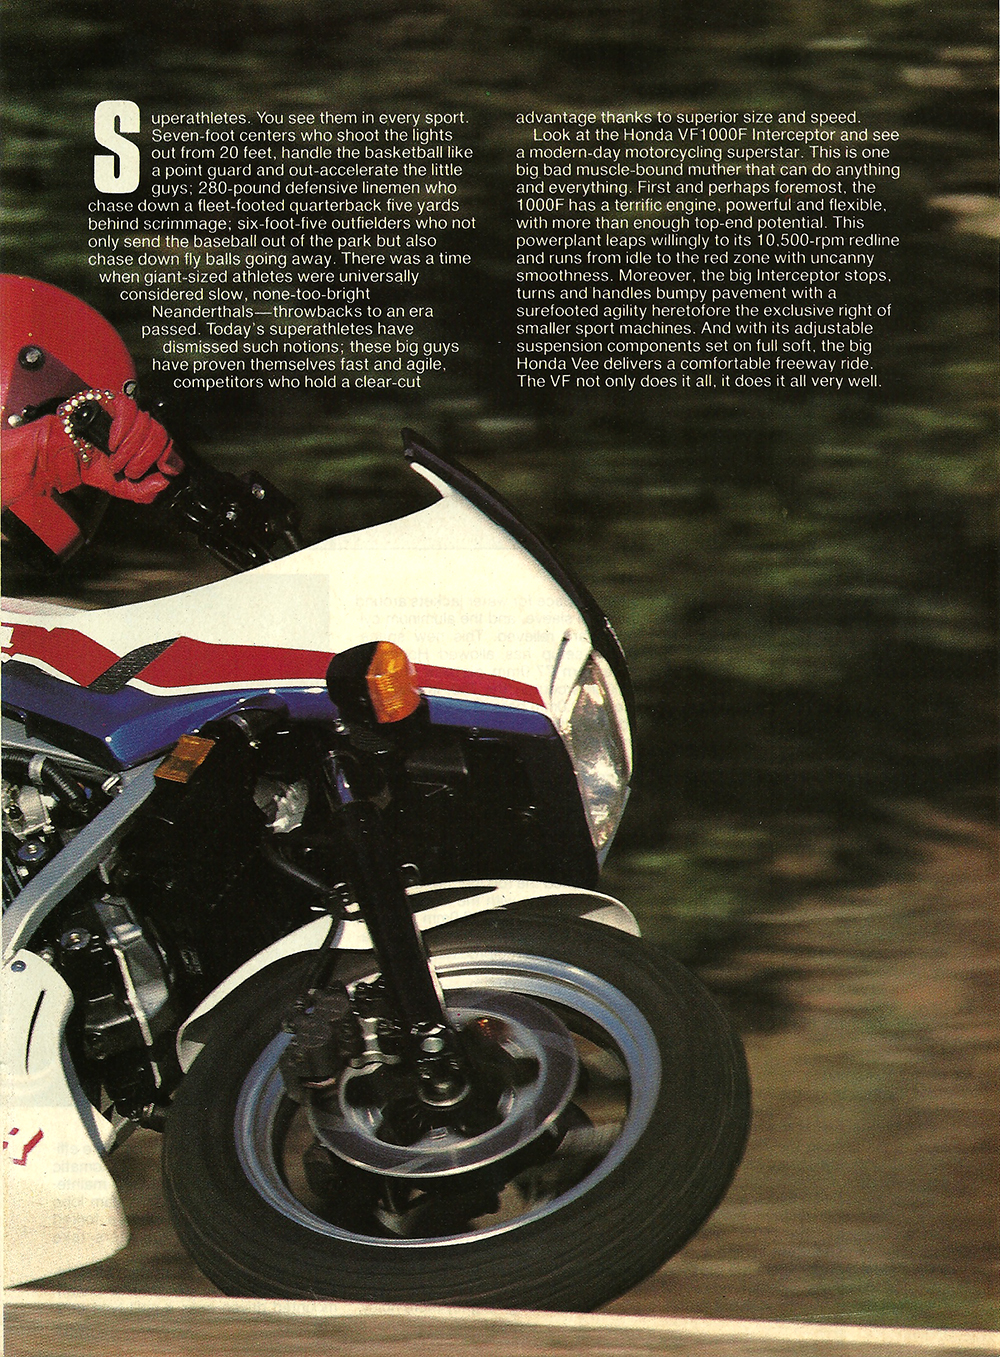 1984 Honda VF1000 Interceptor road test 2.jpg